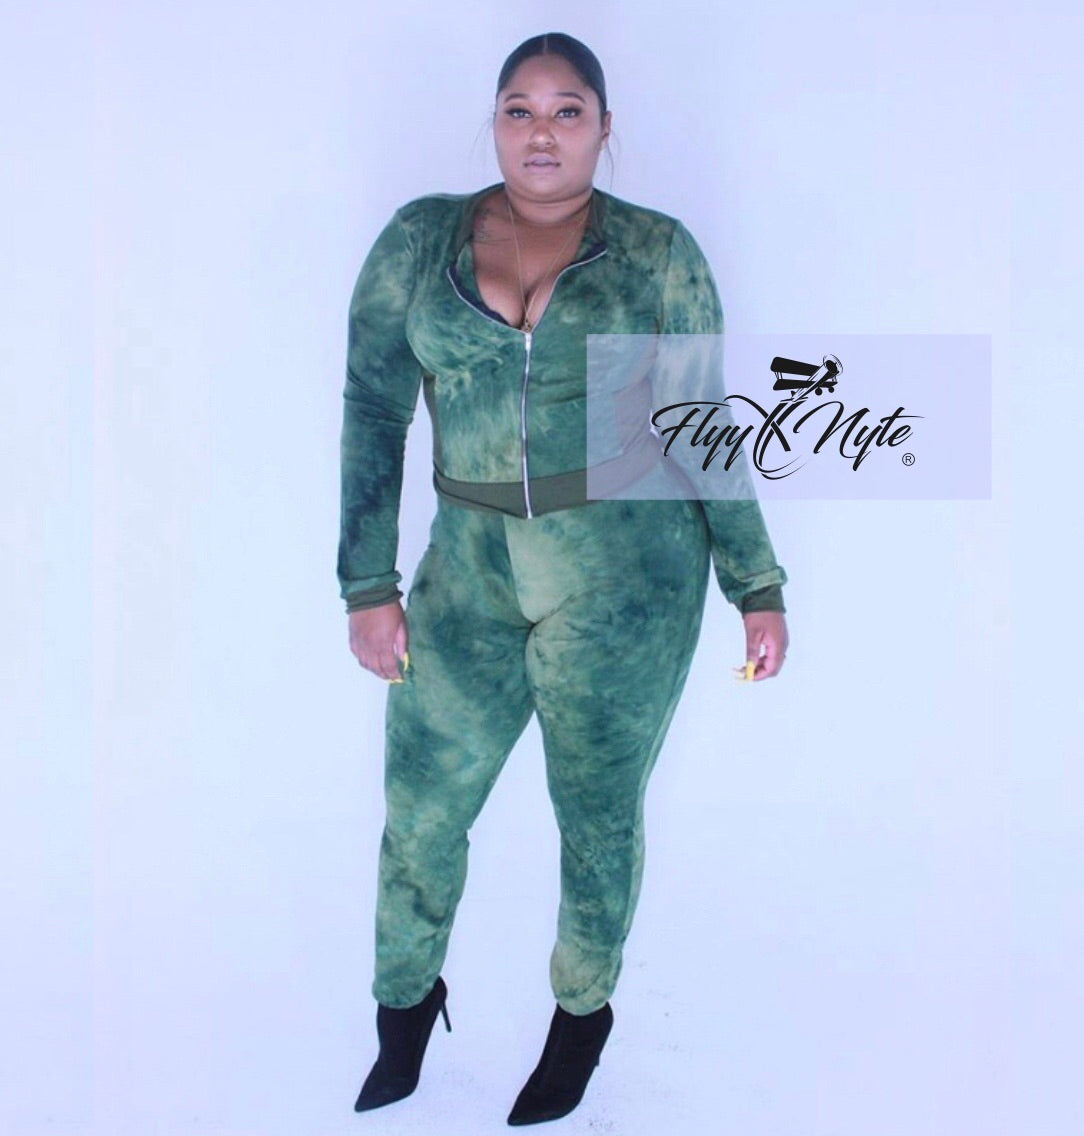 Plus Size 2-Piece Tie Dye Zipper Jacket and Fitted Pants Set in Olive and Mustard